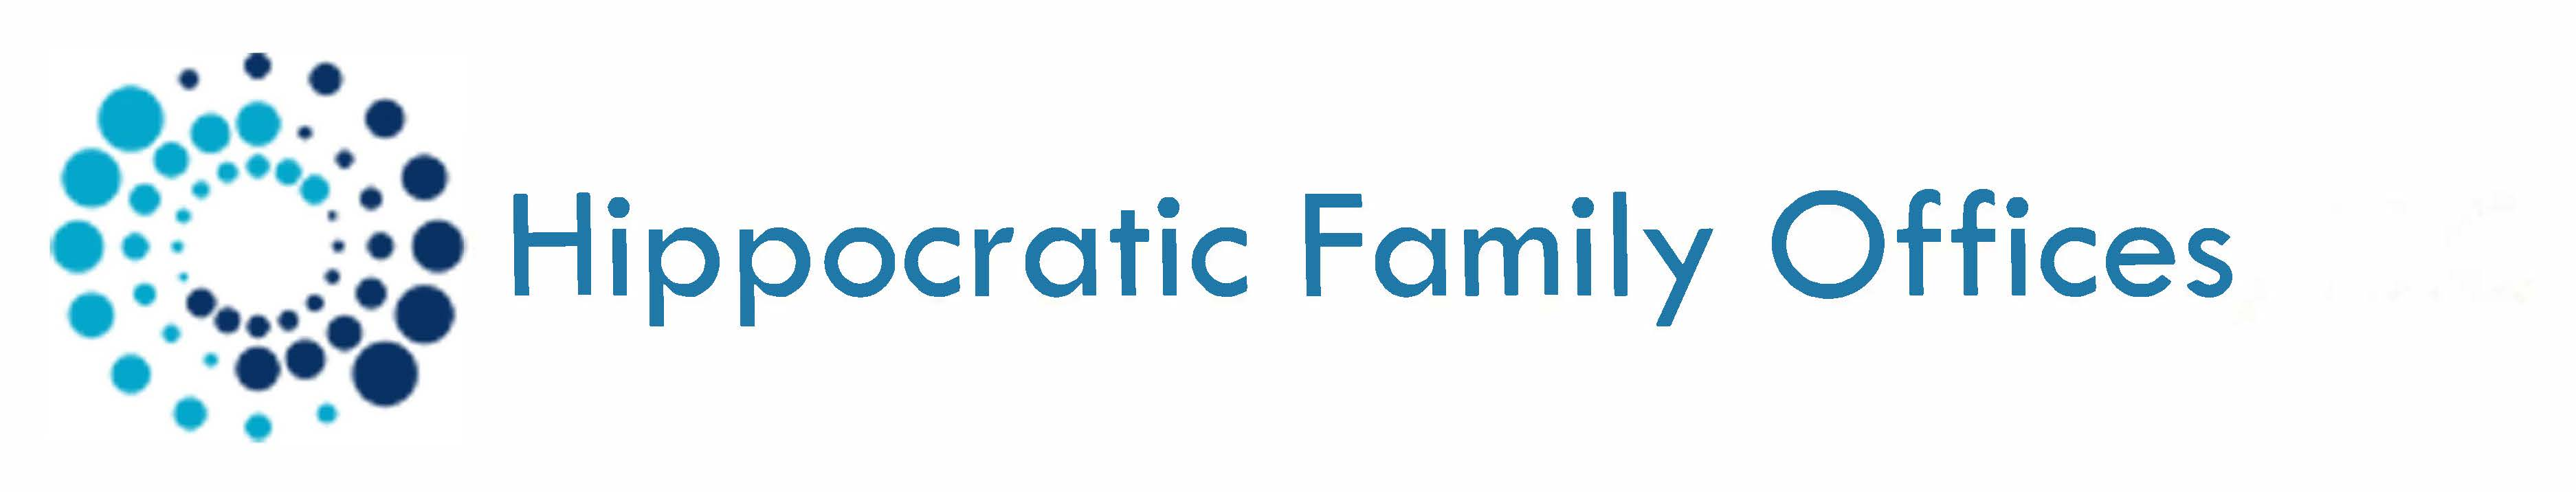 Hippocratic Family Offices, LLC Logo